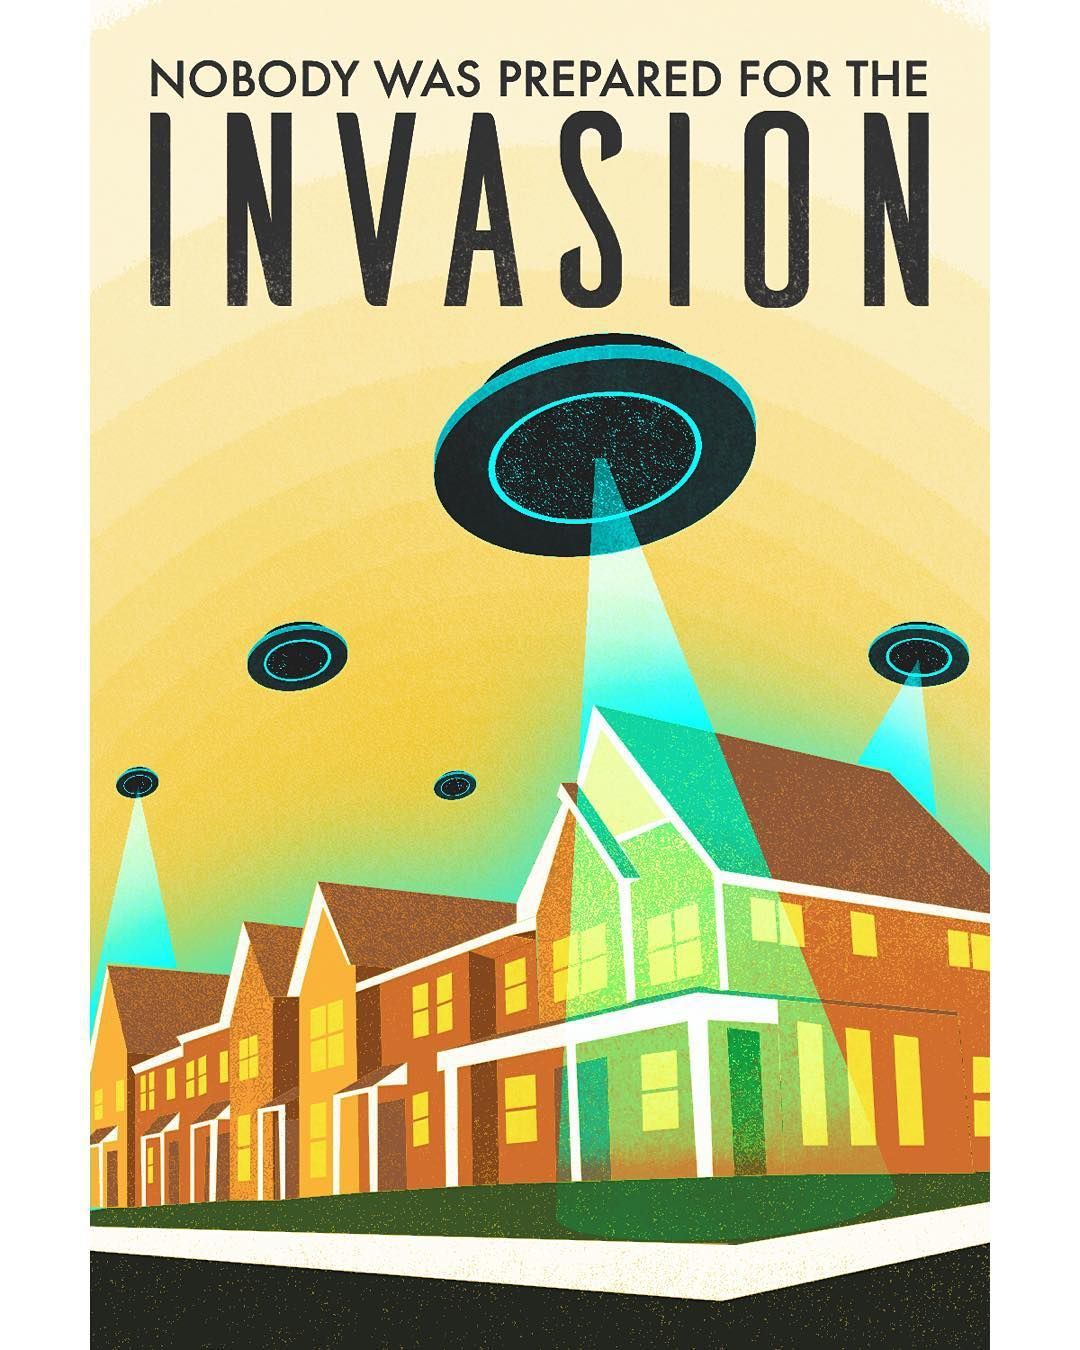 Been working this week on a series of quick fake #movie #posters for a client's TV pilot project.  #graphic #design #graphicdesign #vector #vectorart #illustrator #poster #aliens #scifi #print #theinvasion